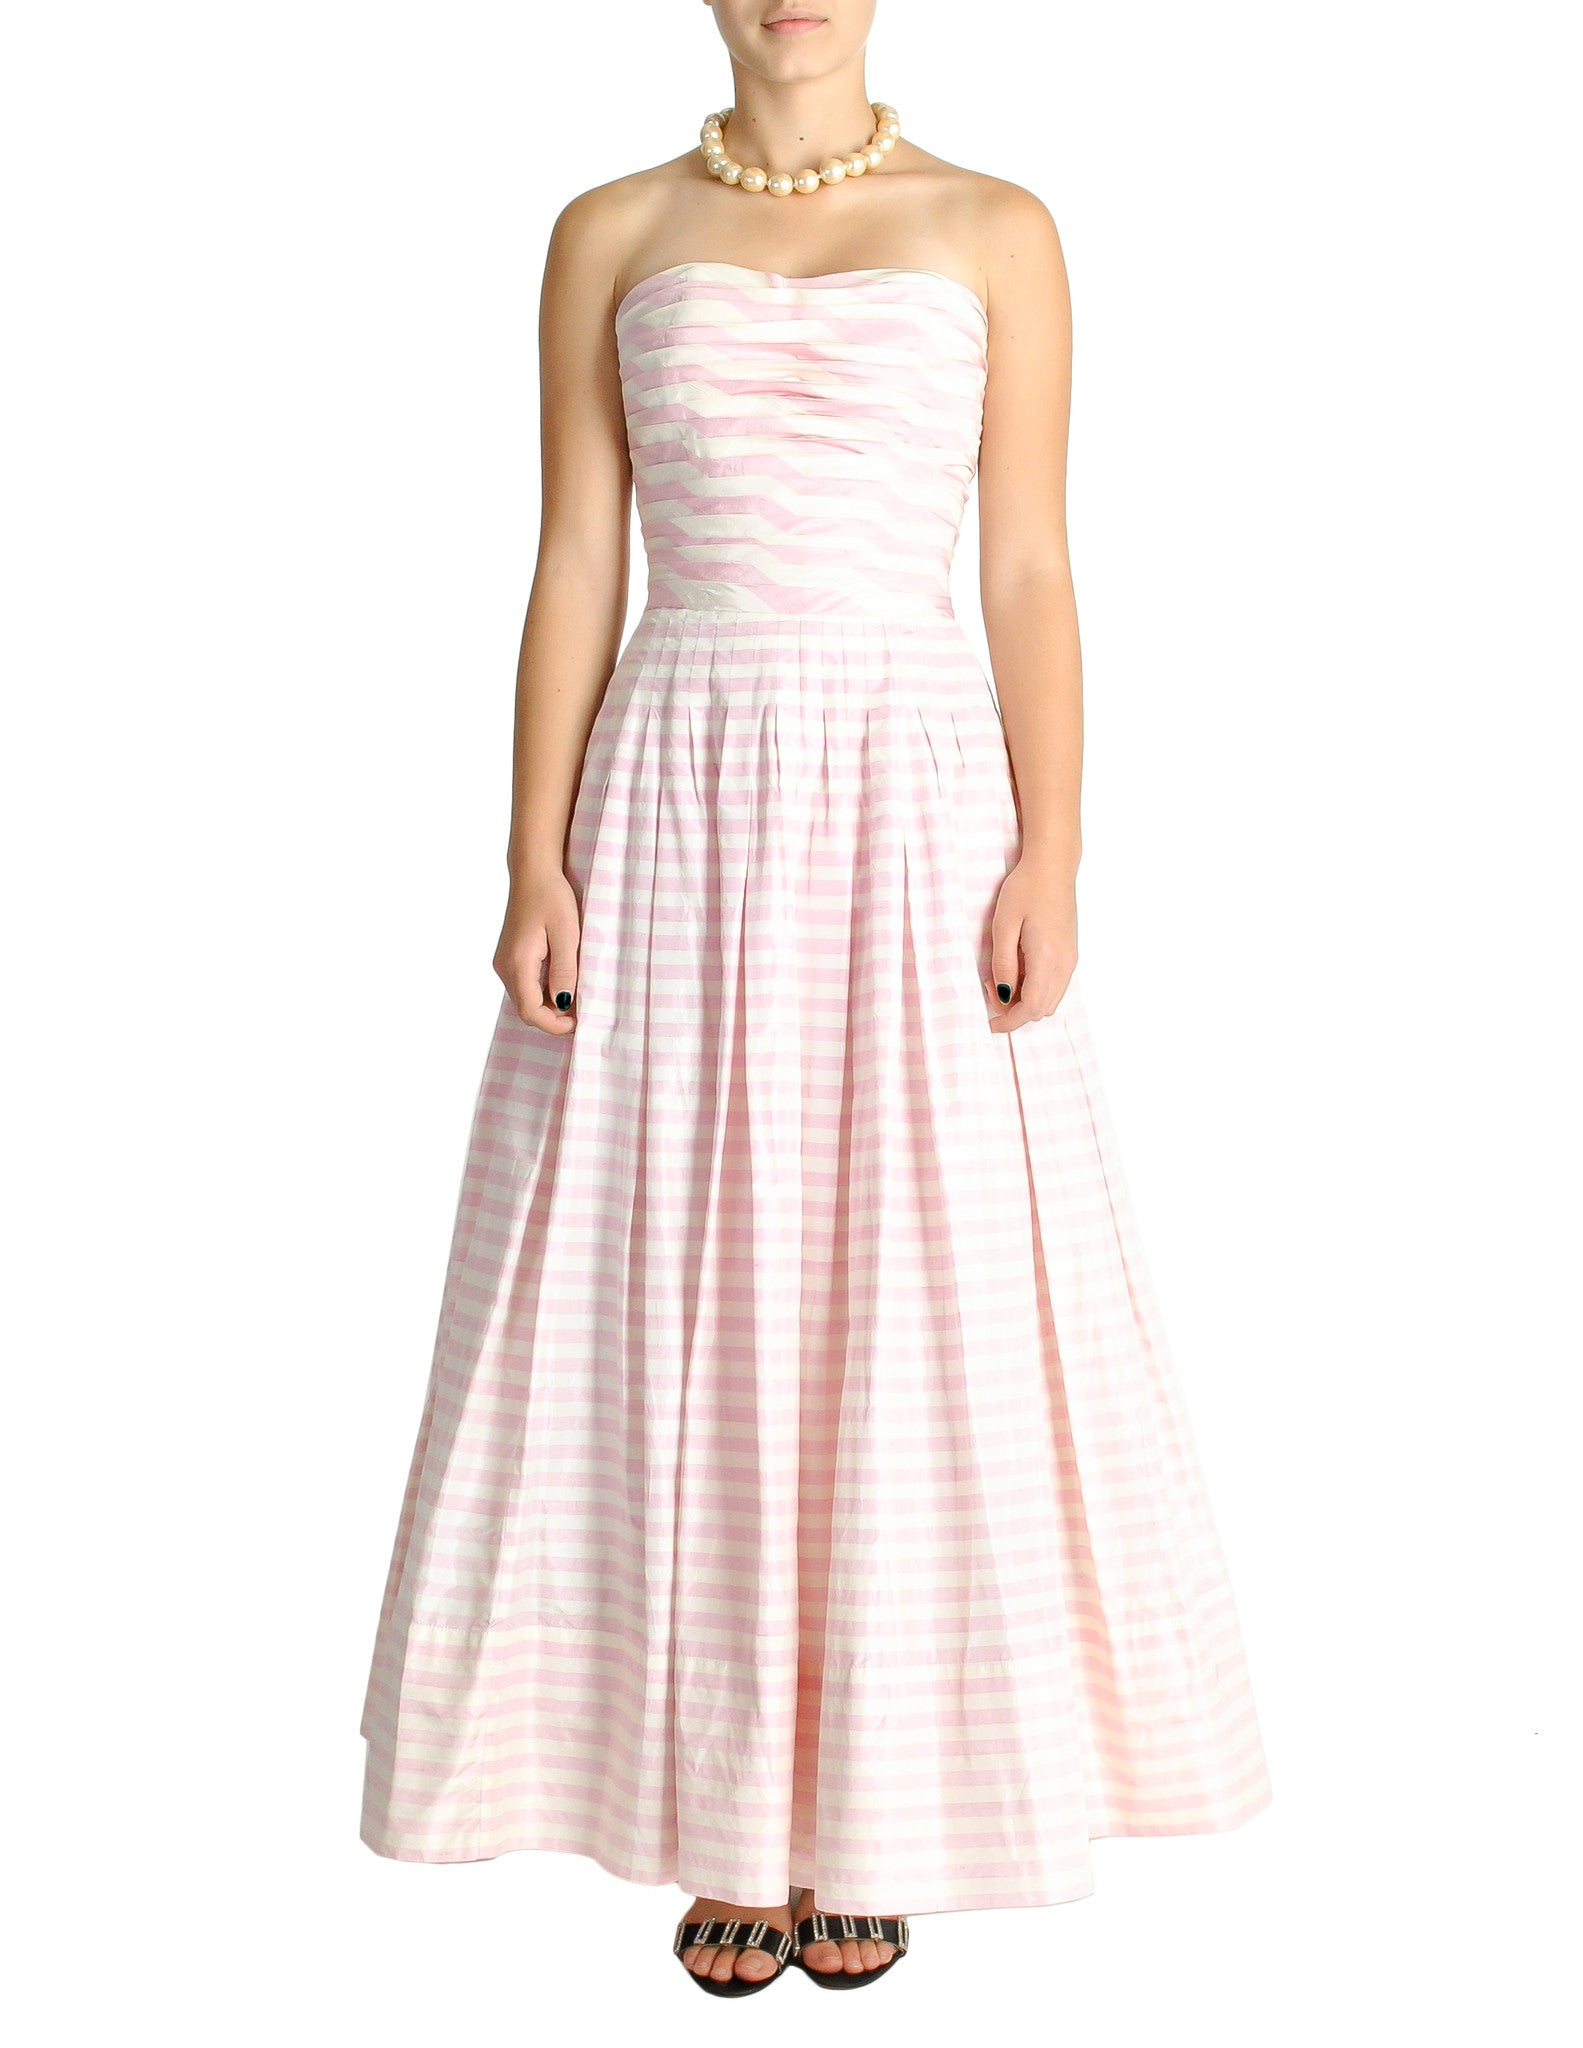 Chanel Vintage Pink & White Striped Raw Silk Gown Dress - Amarcord Vintage Fashion  - 1